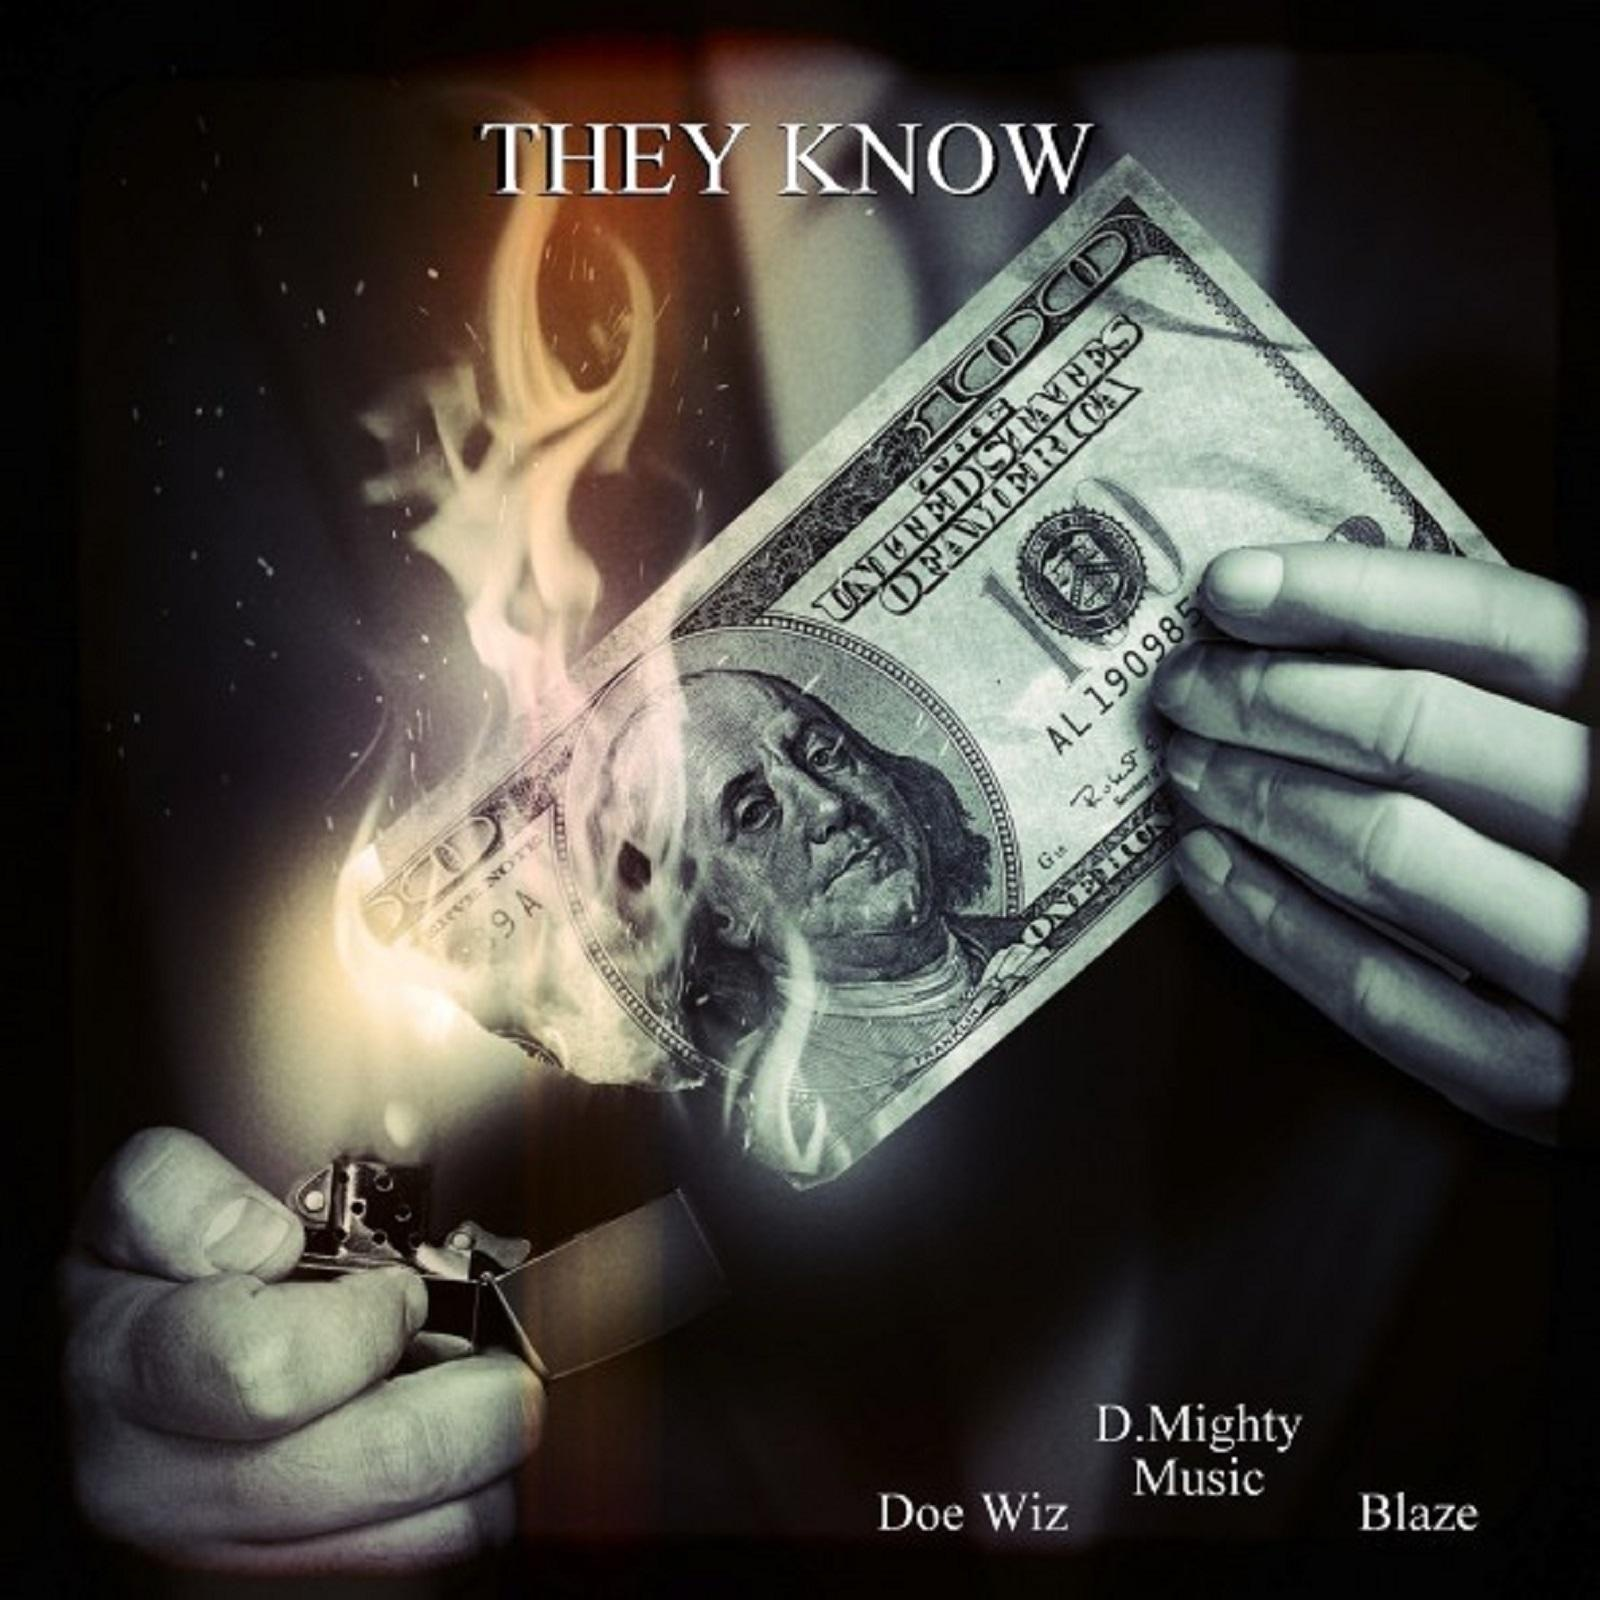 They Know (feat. Doe Wiz & Blaze) - Single